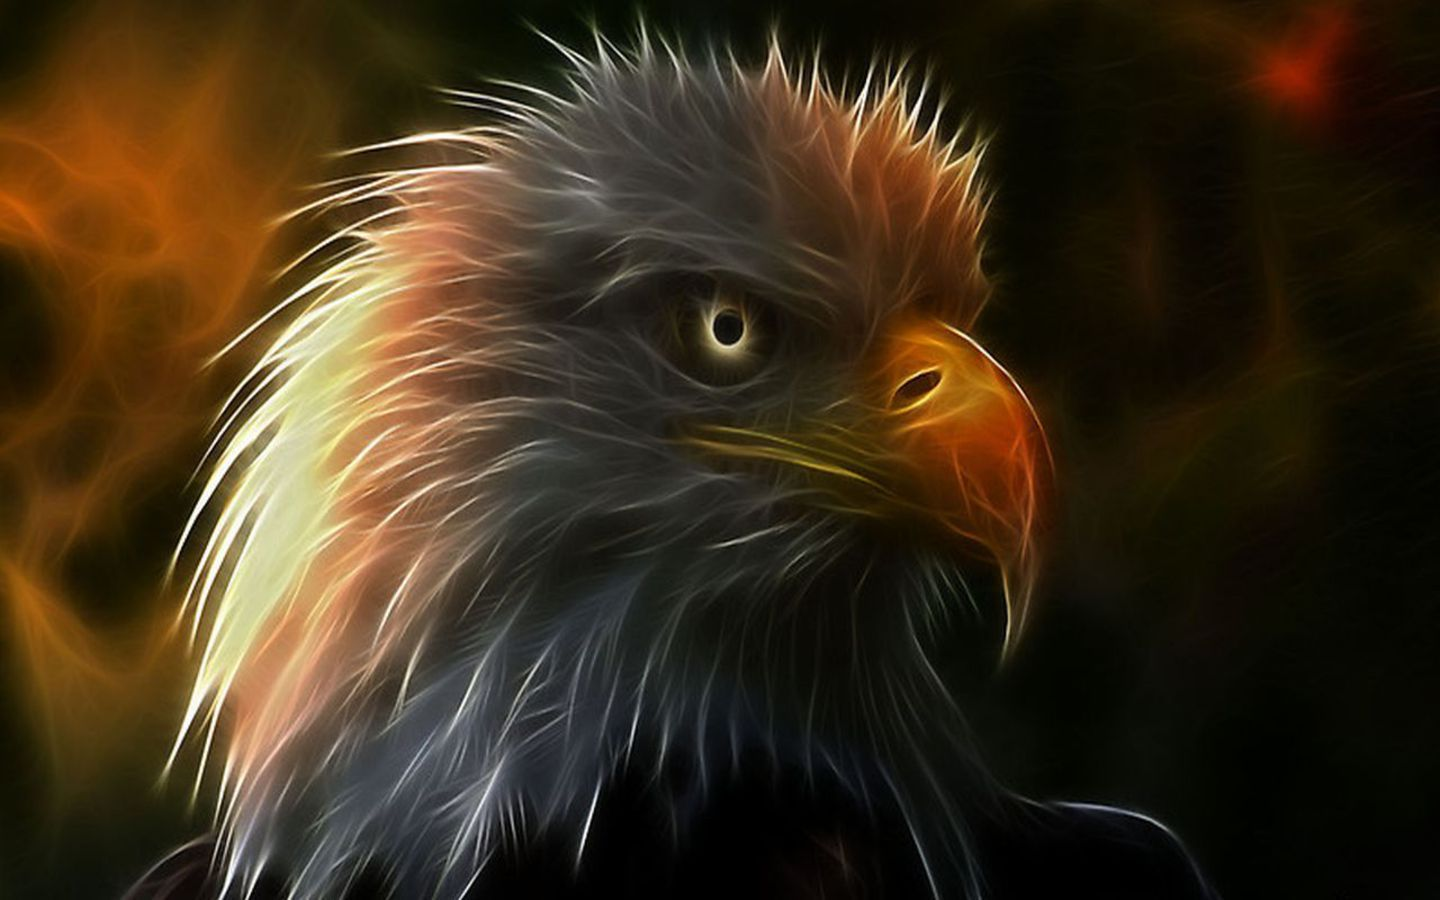 eagles eyes in oictures Fireeagle Wallpaper pictures